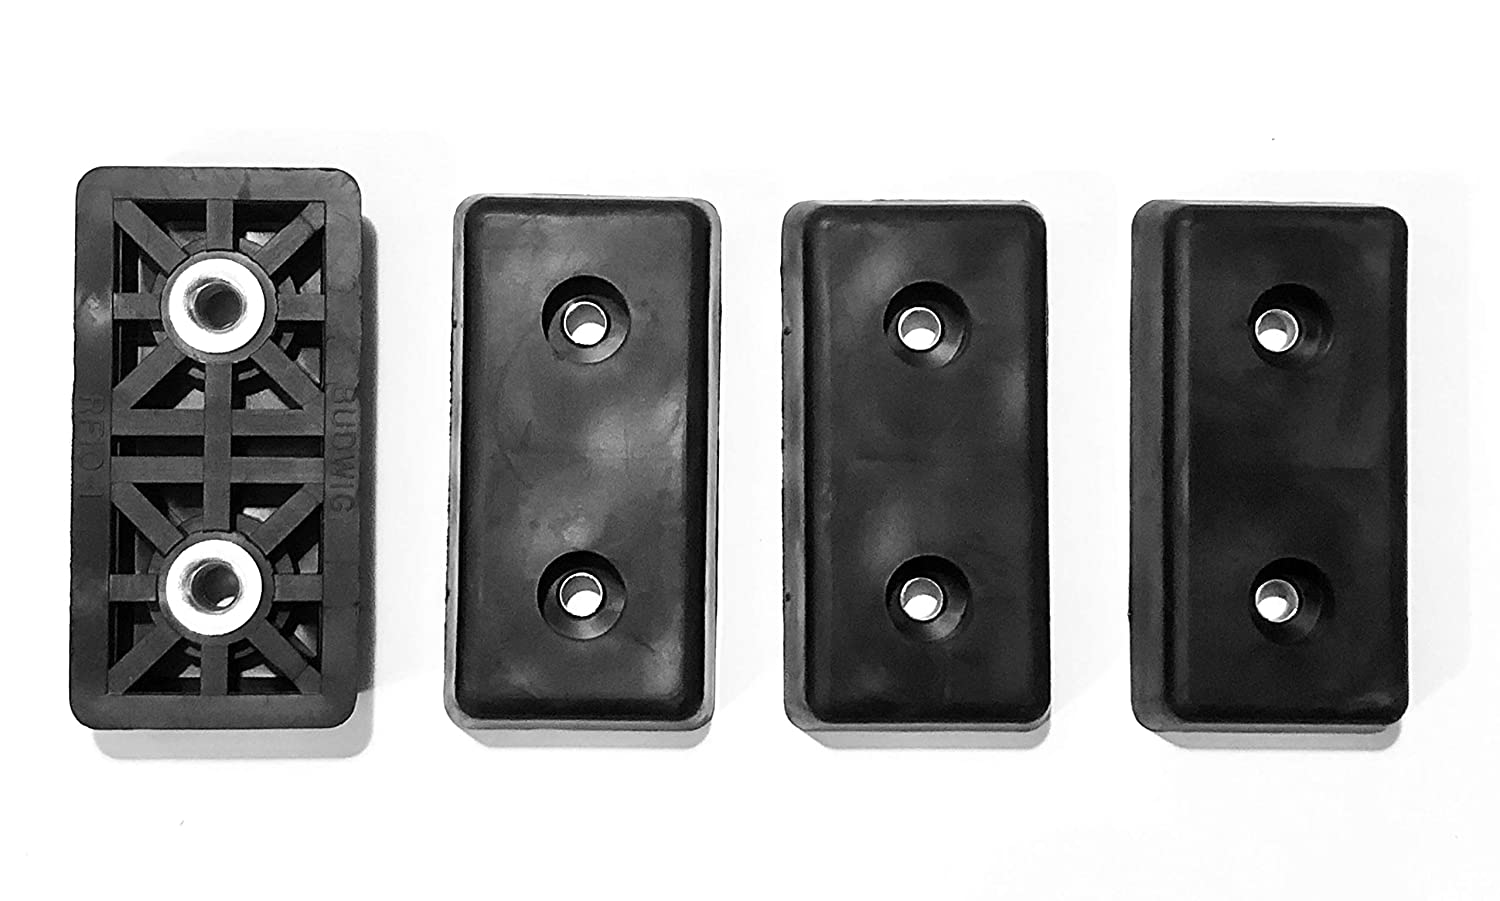 4 Extra Large Rectangular Rubber Feet Bumpers - .590 H X 3.000 L X 1.510 W - Made in USA